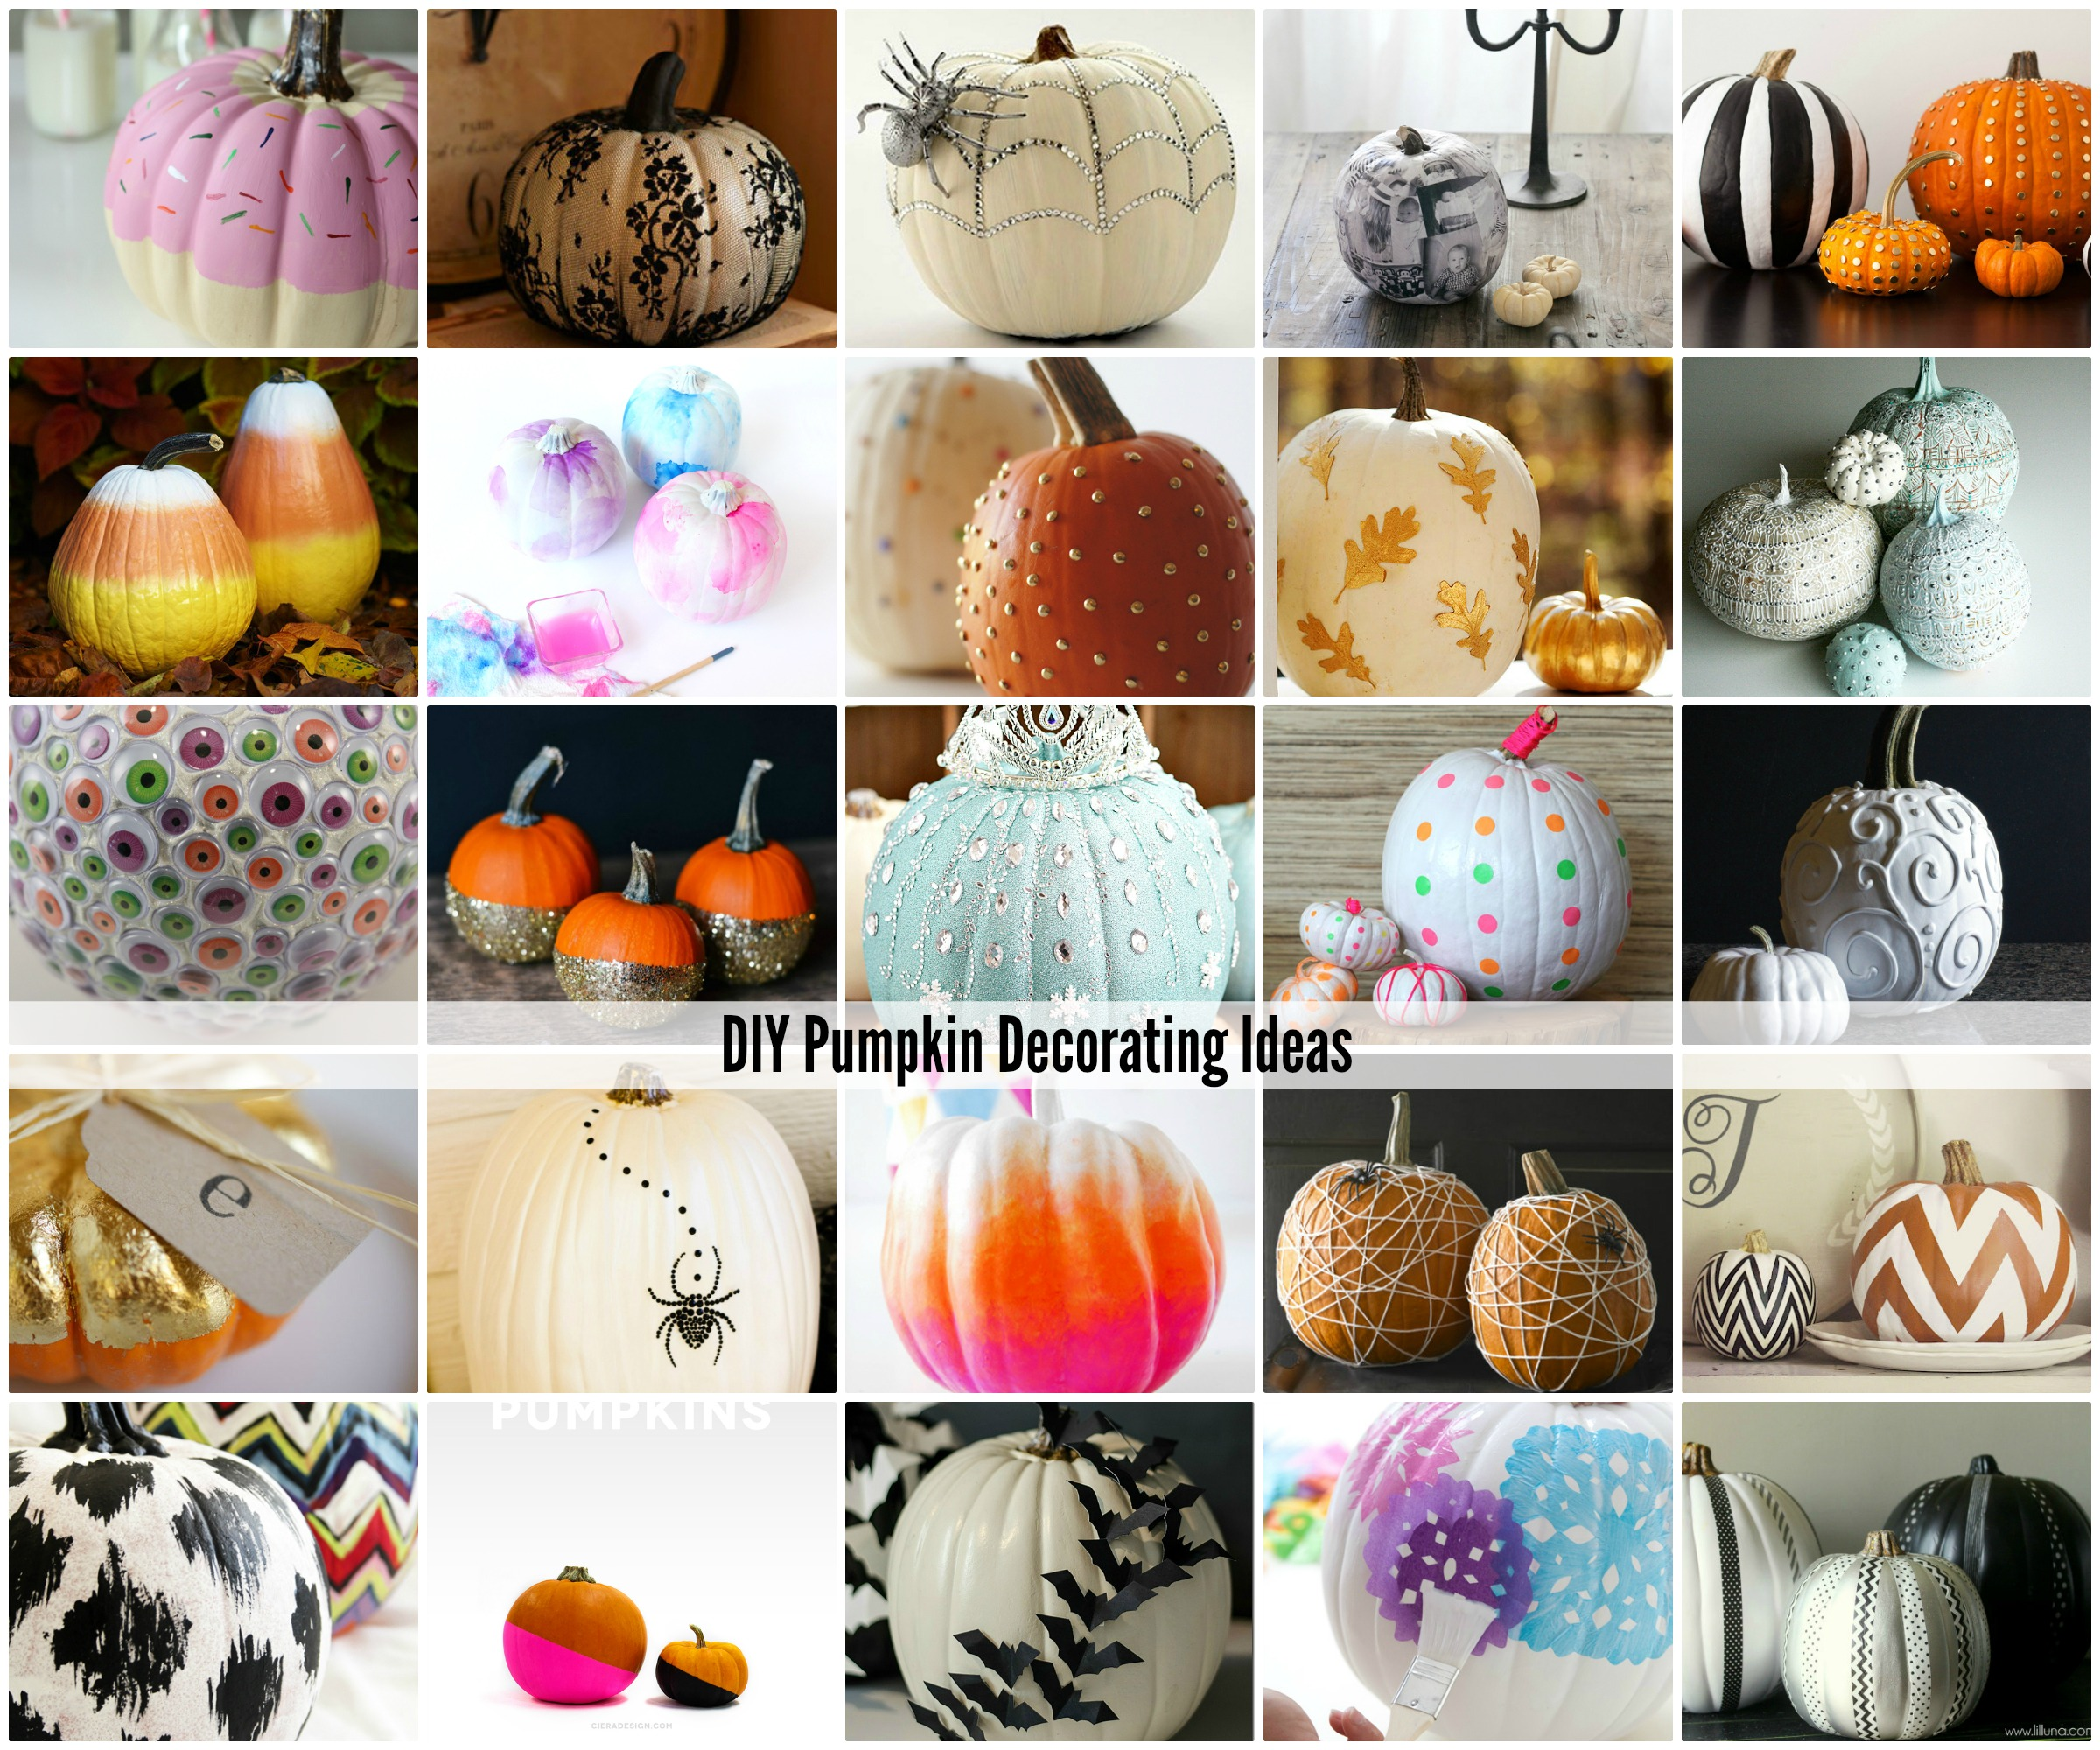 DIY-Pumpkin-Decorating-Ideas-1